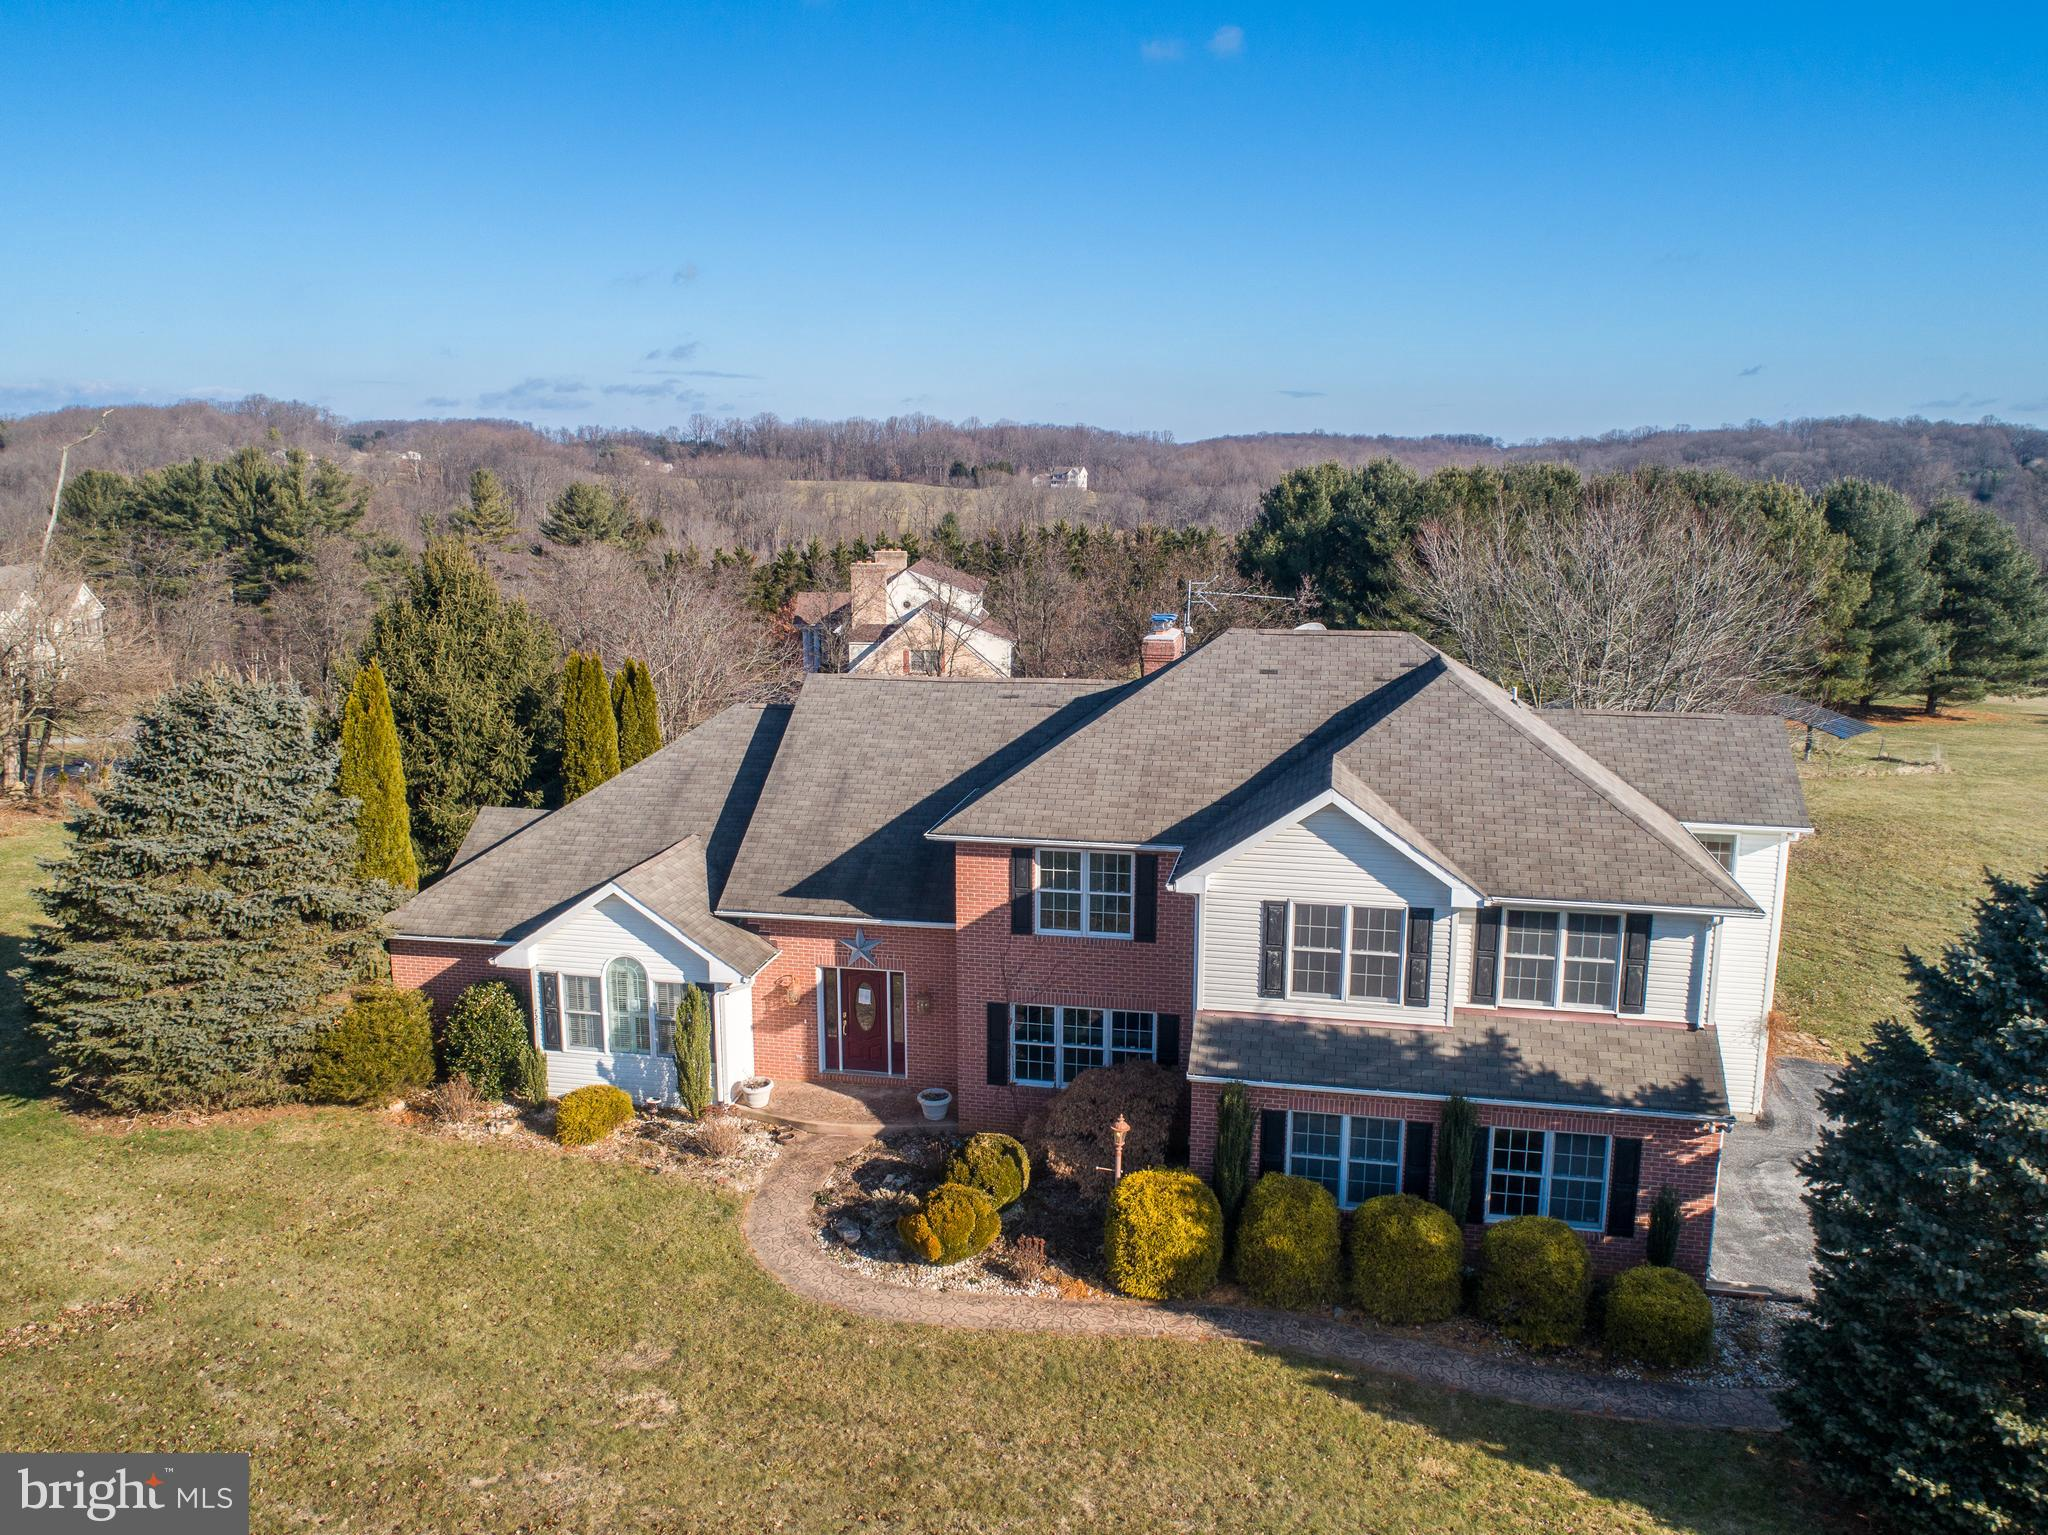 725 THOROBRED KNOLL Dr, Westminster, MD, 21157